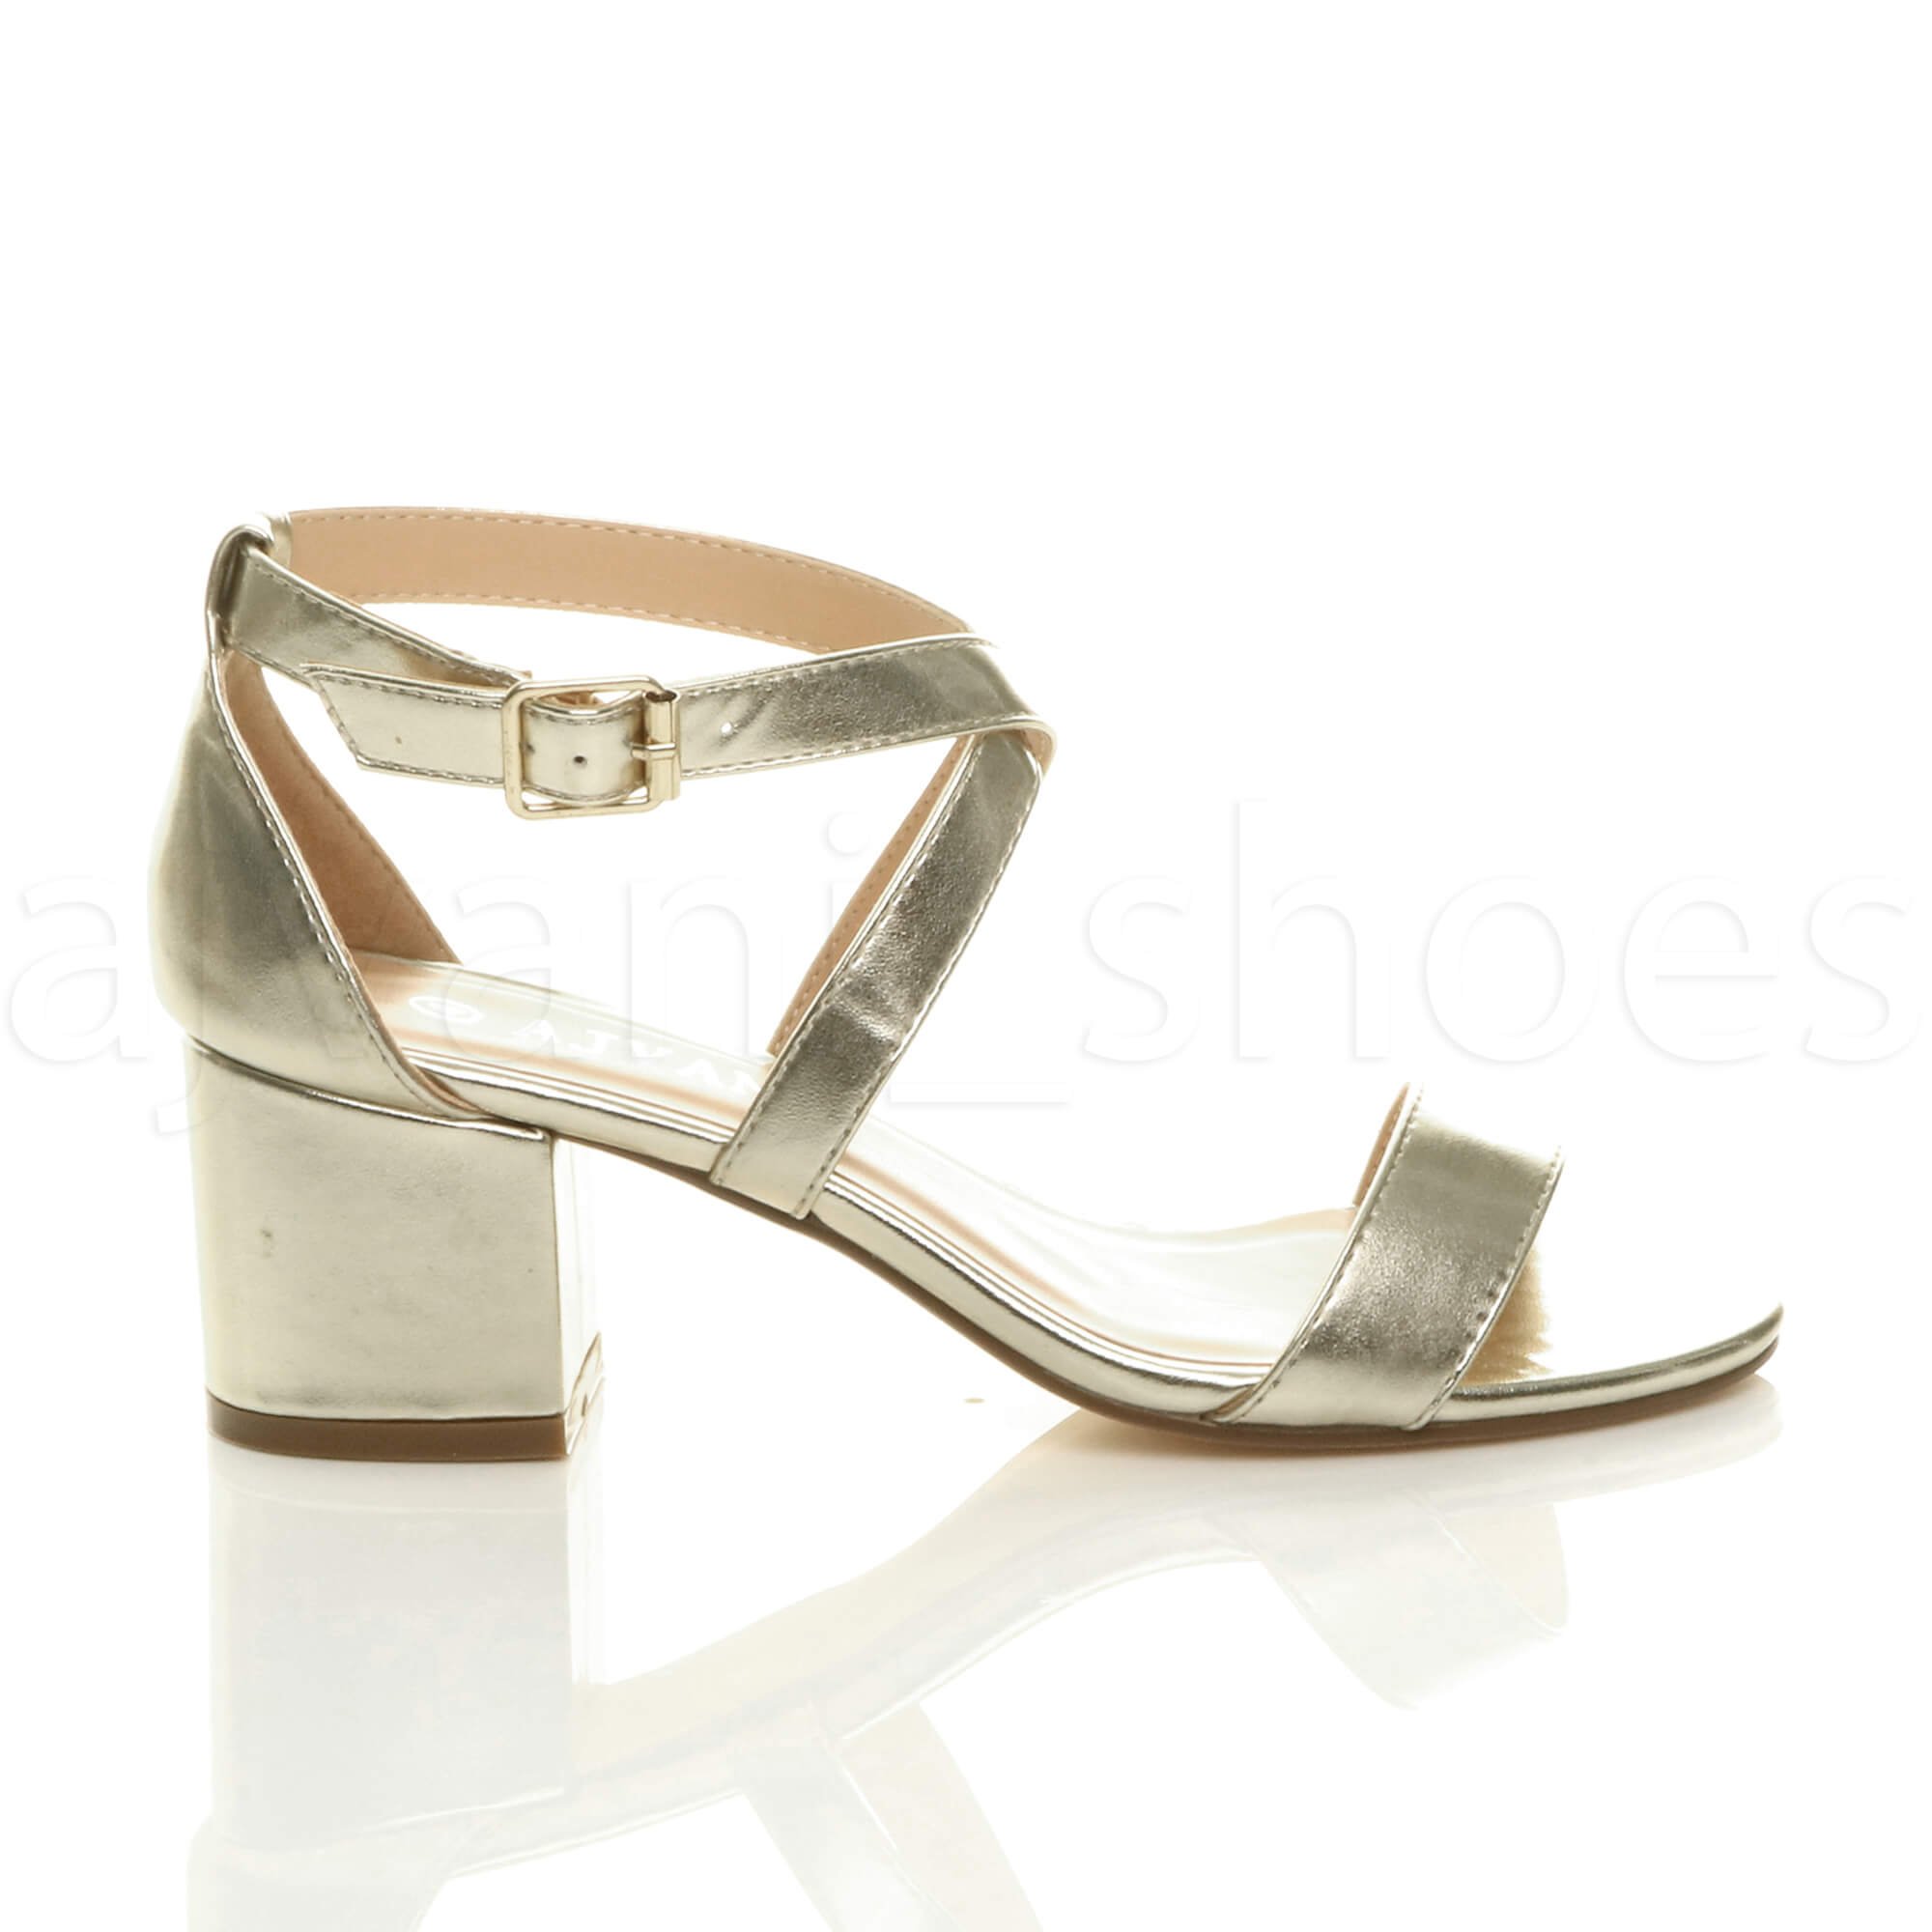 WOMENS-LADIES-MID-LOW-BLOCK-HEEL-CROSS-STRAPS-PARTY-STRAPPY-SANDALS-SHOES-SIZE thumbnail 30